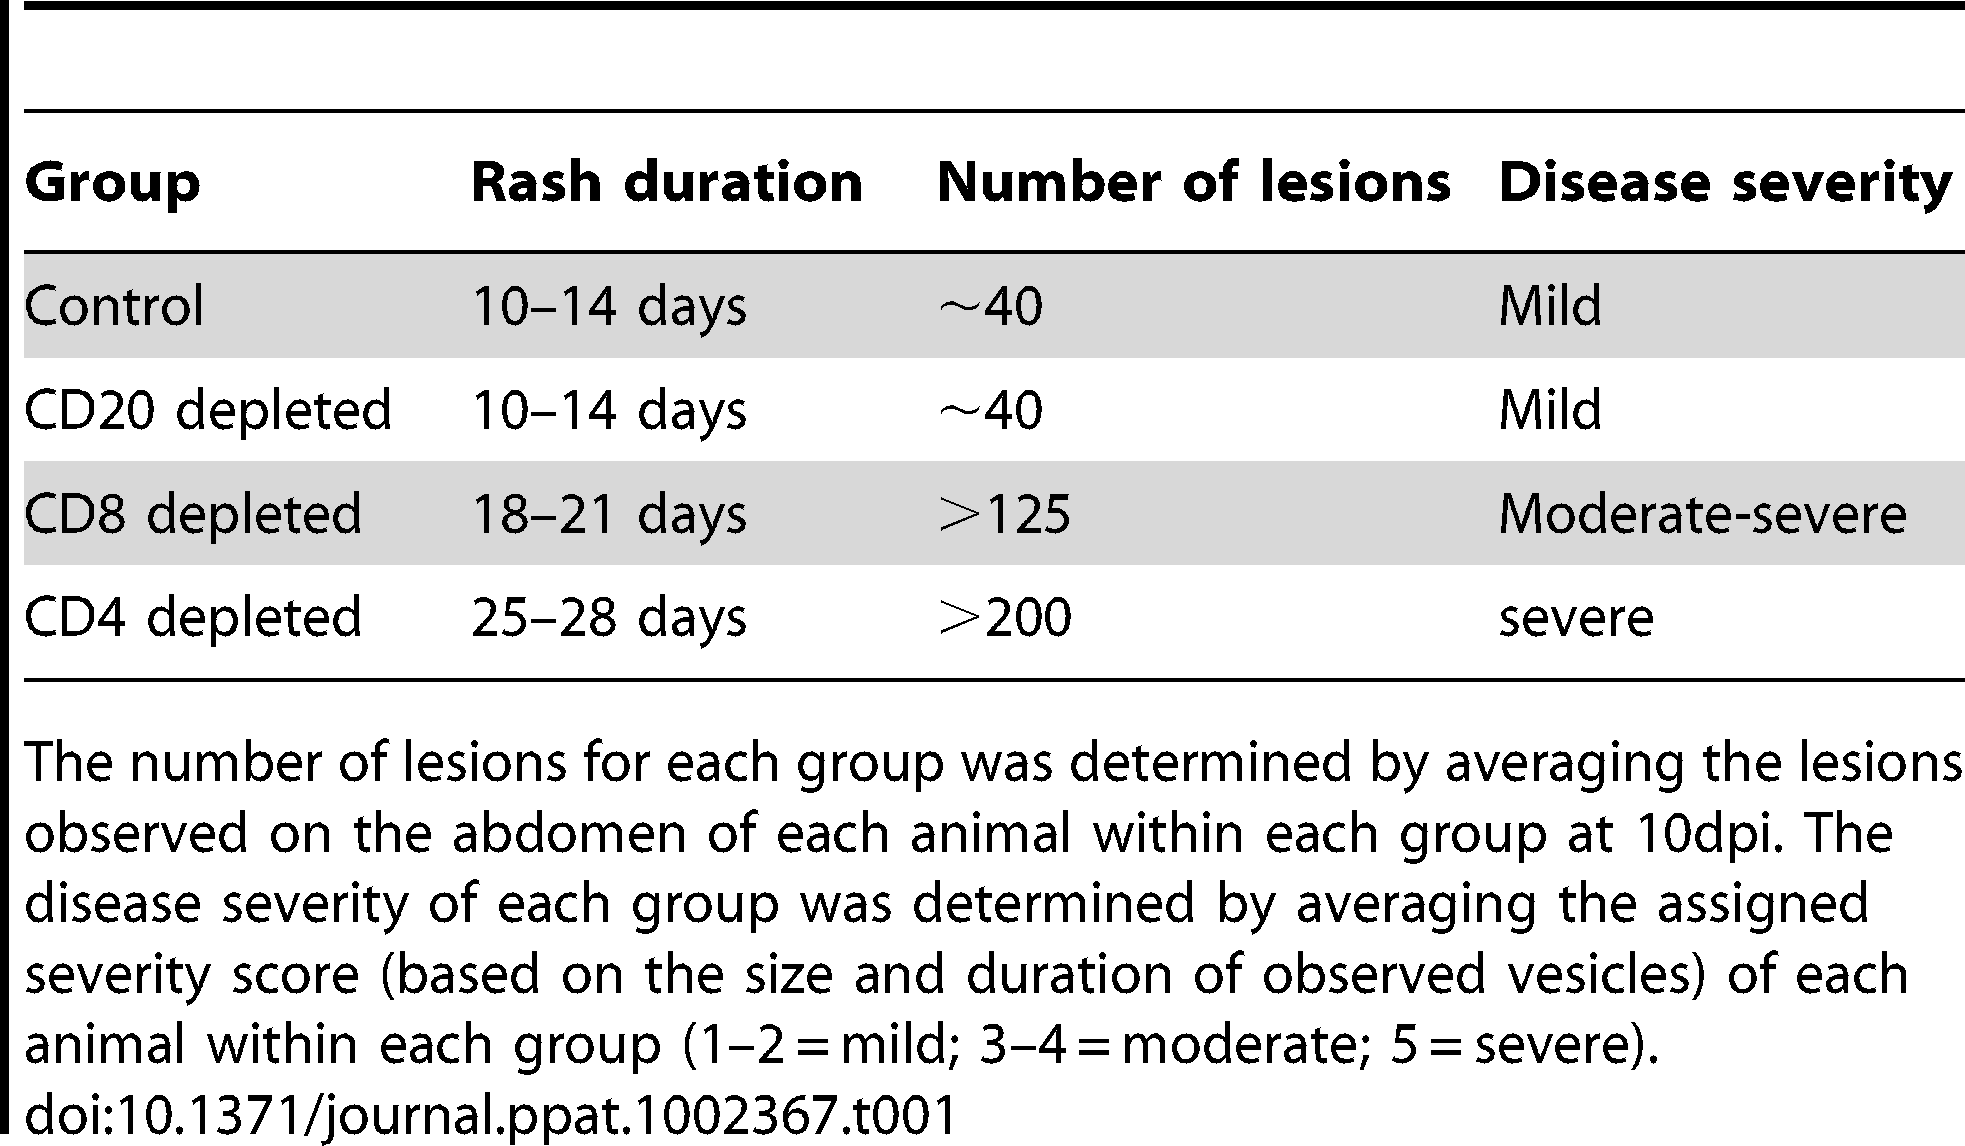 Summary of rash duration, lesion number, and disease severity of control and experimental animal groups following acute SVV infection.